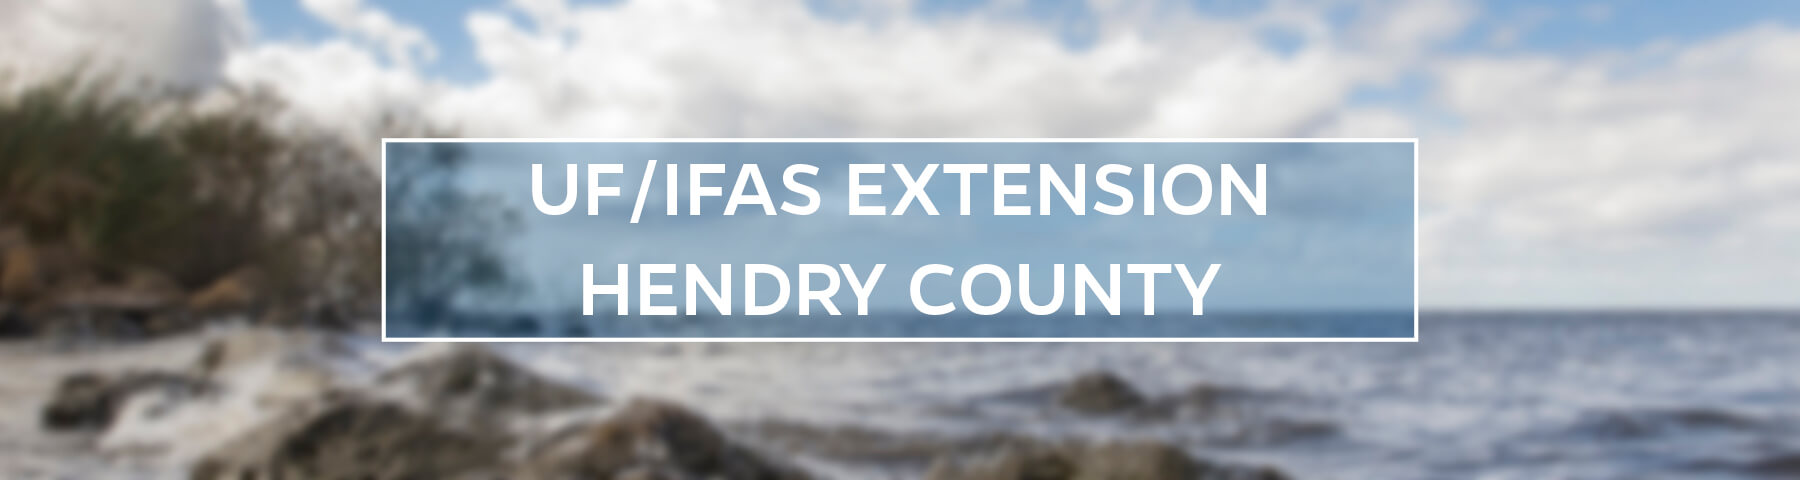 UF/IFAS Extension Hendry County